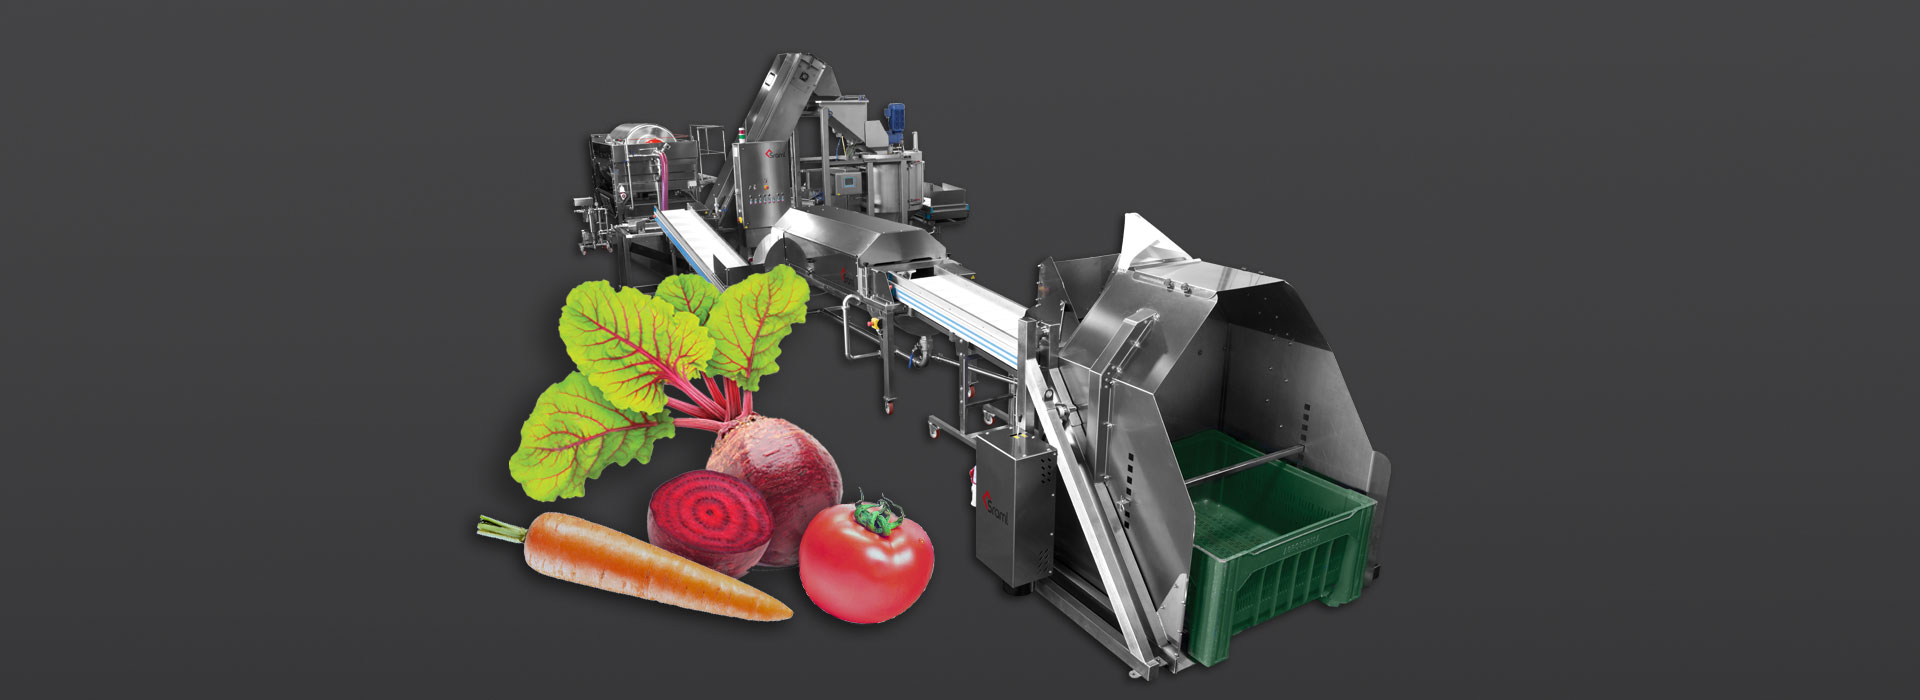 sraml-vegetable-processing